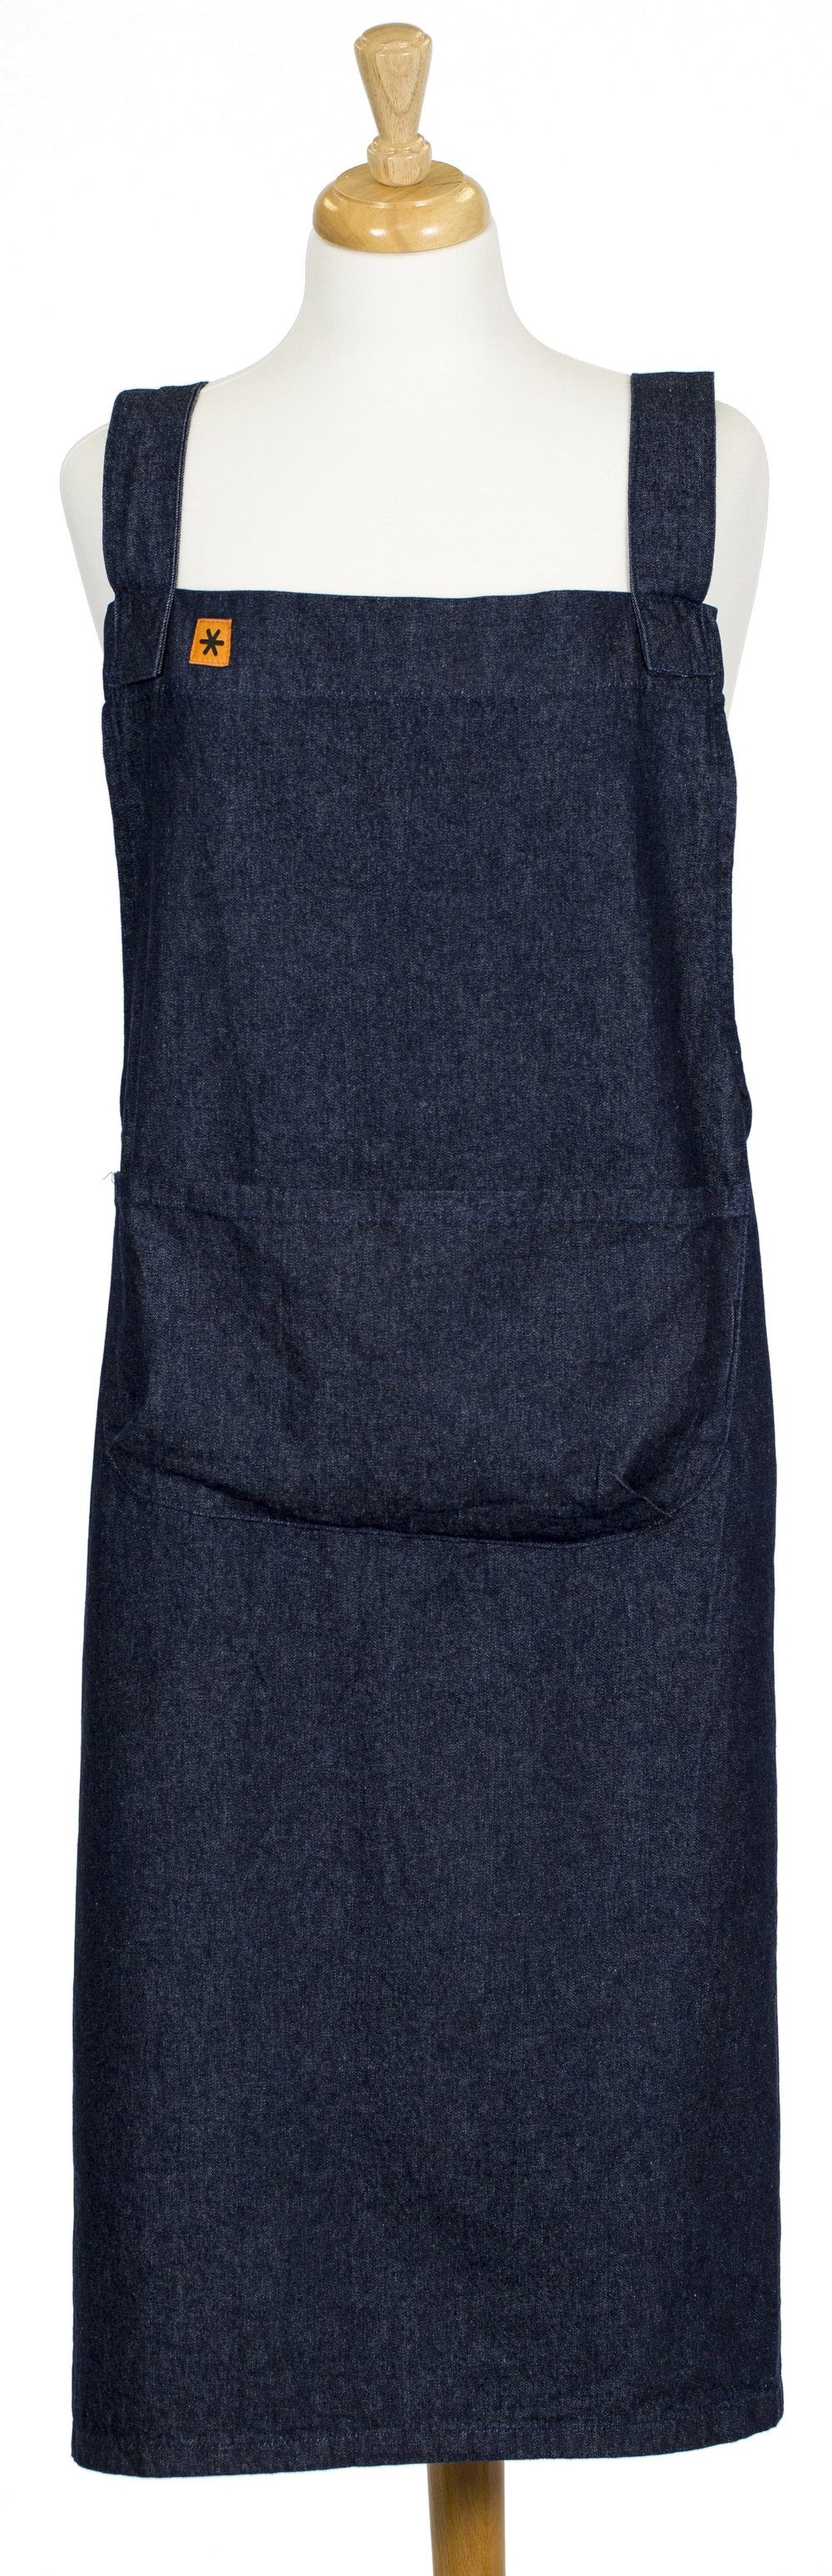 Denim Susie Pianfire Apron from The Stitch Society.JPG